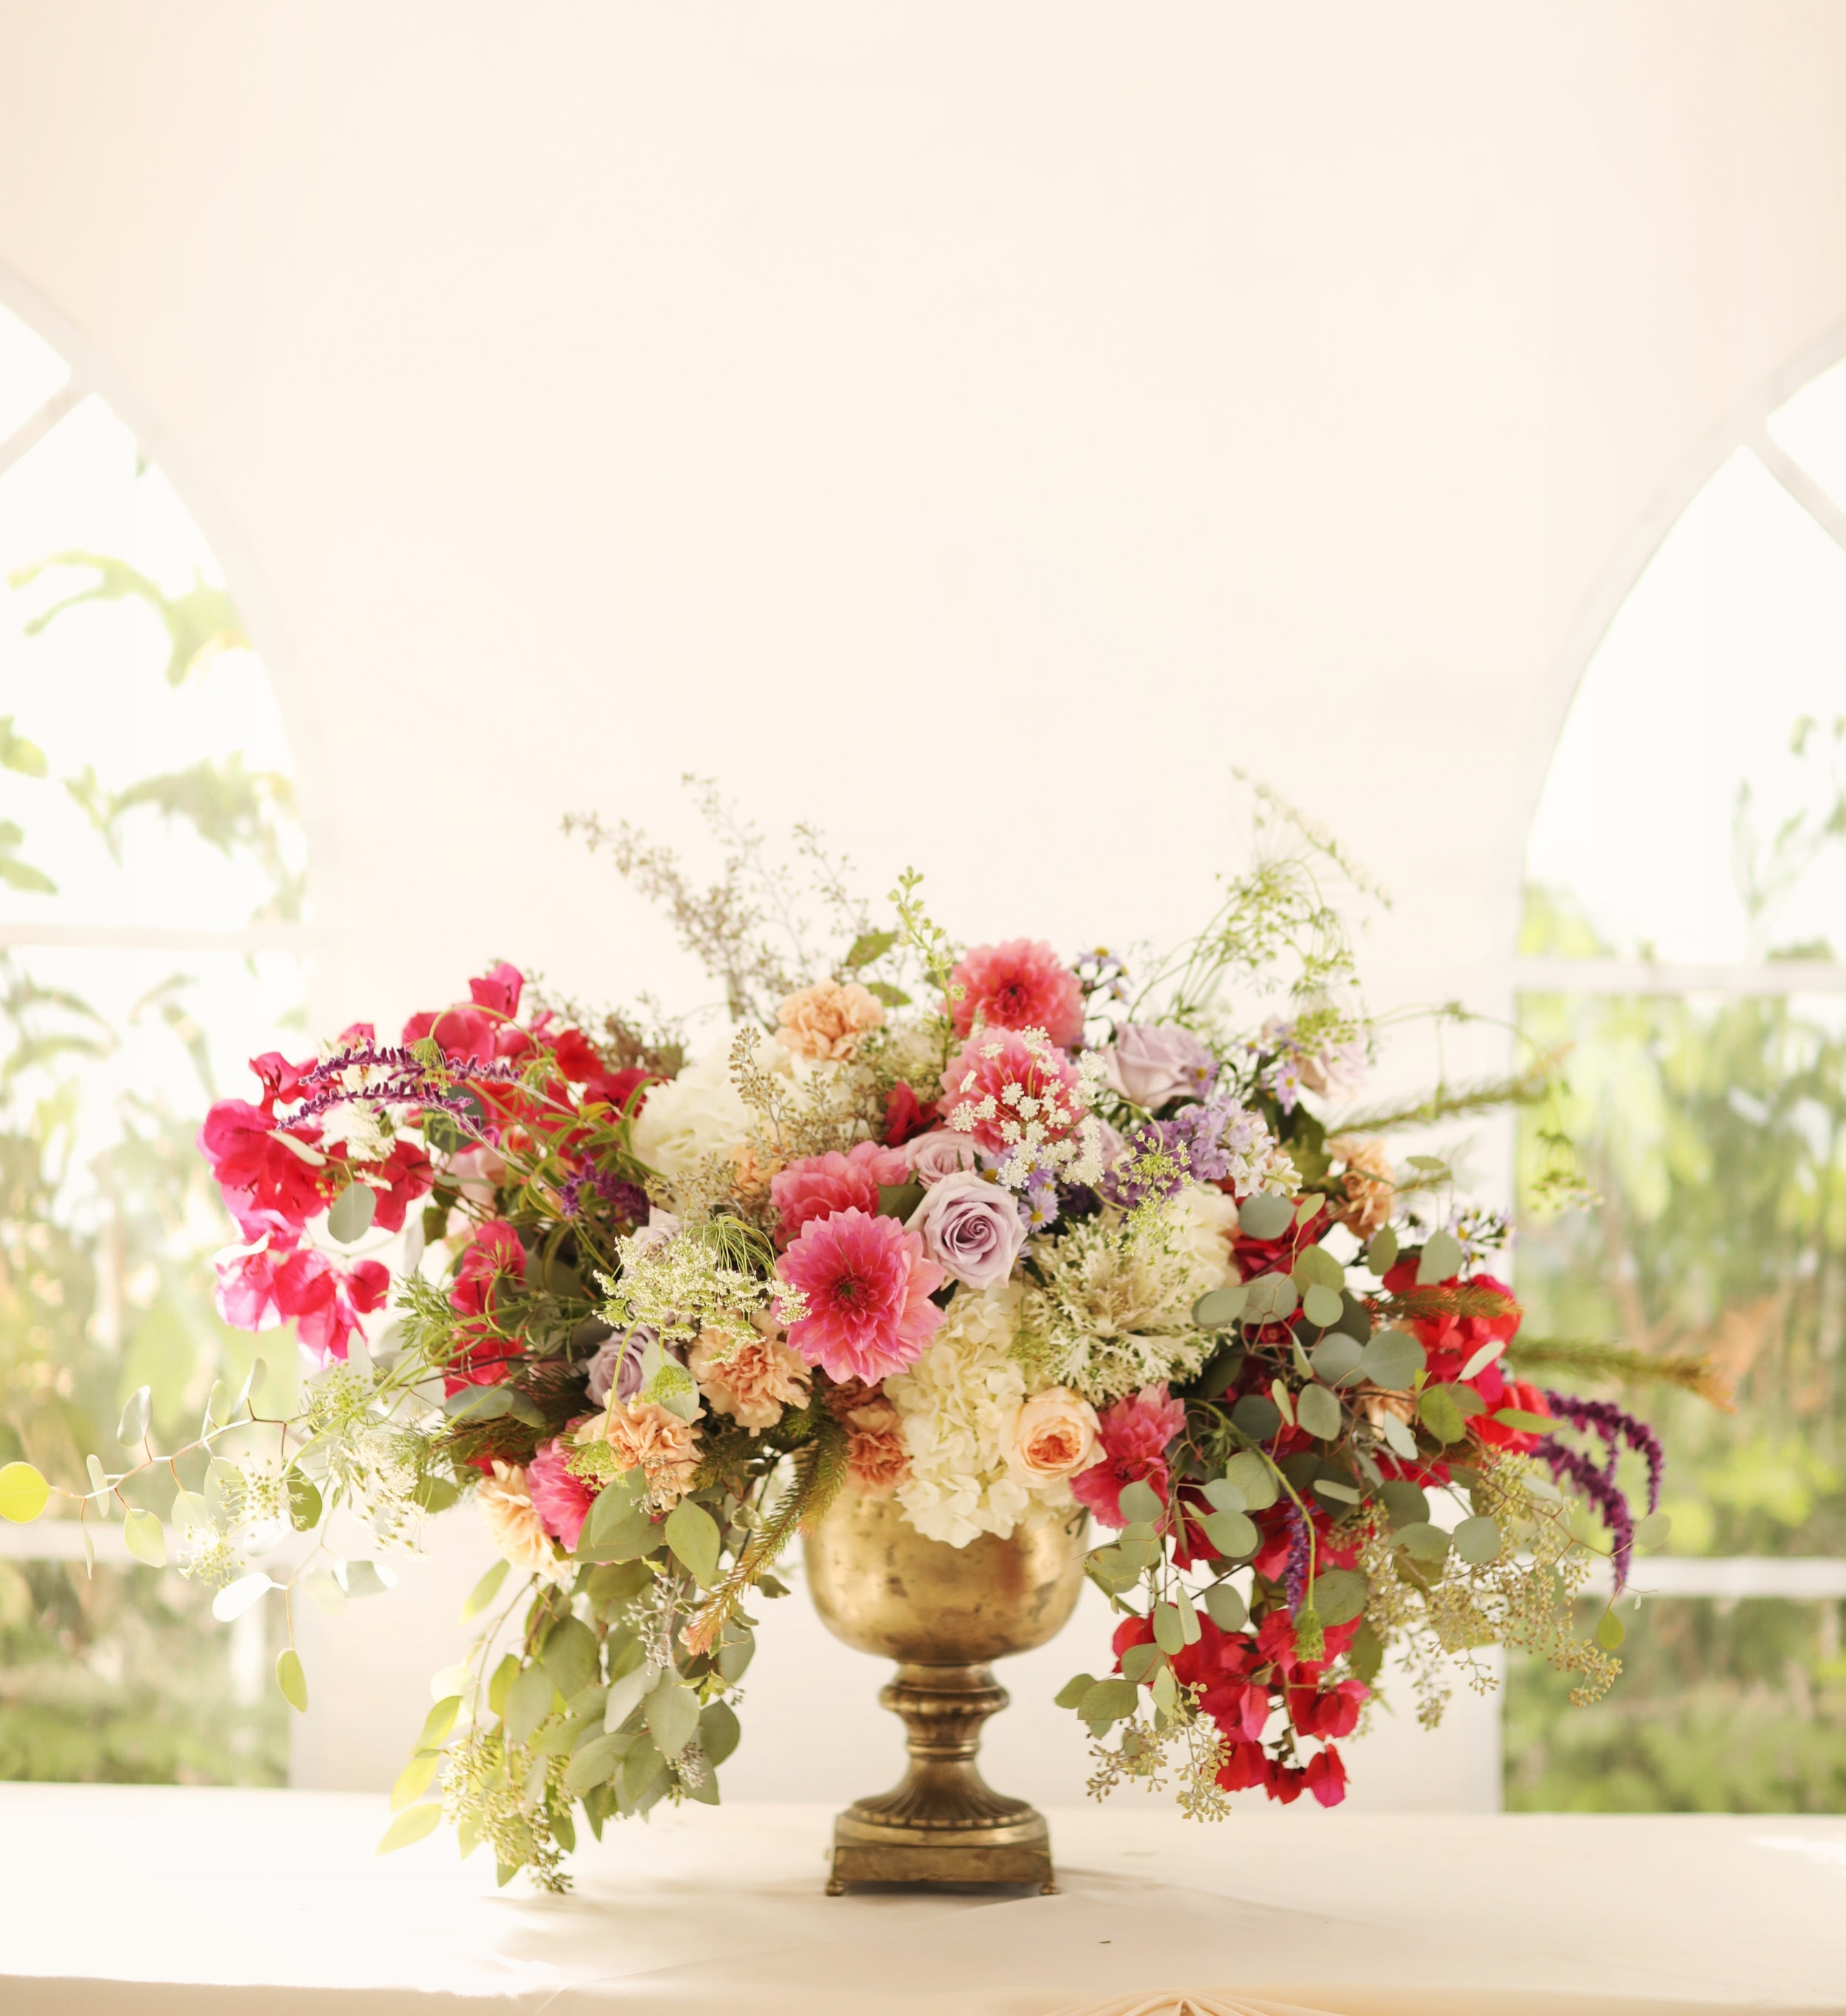 Roses and bougainvillea are the subject of this wedding photo. Reception floral arrangement by Bleudog Floral